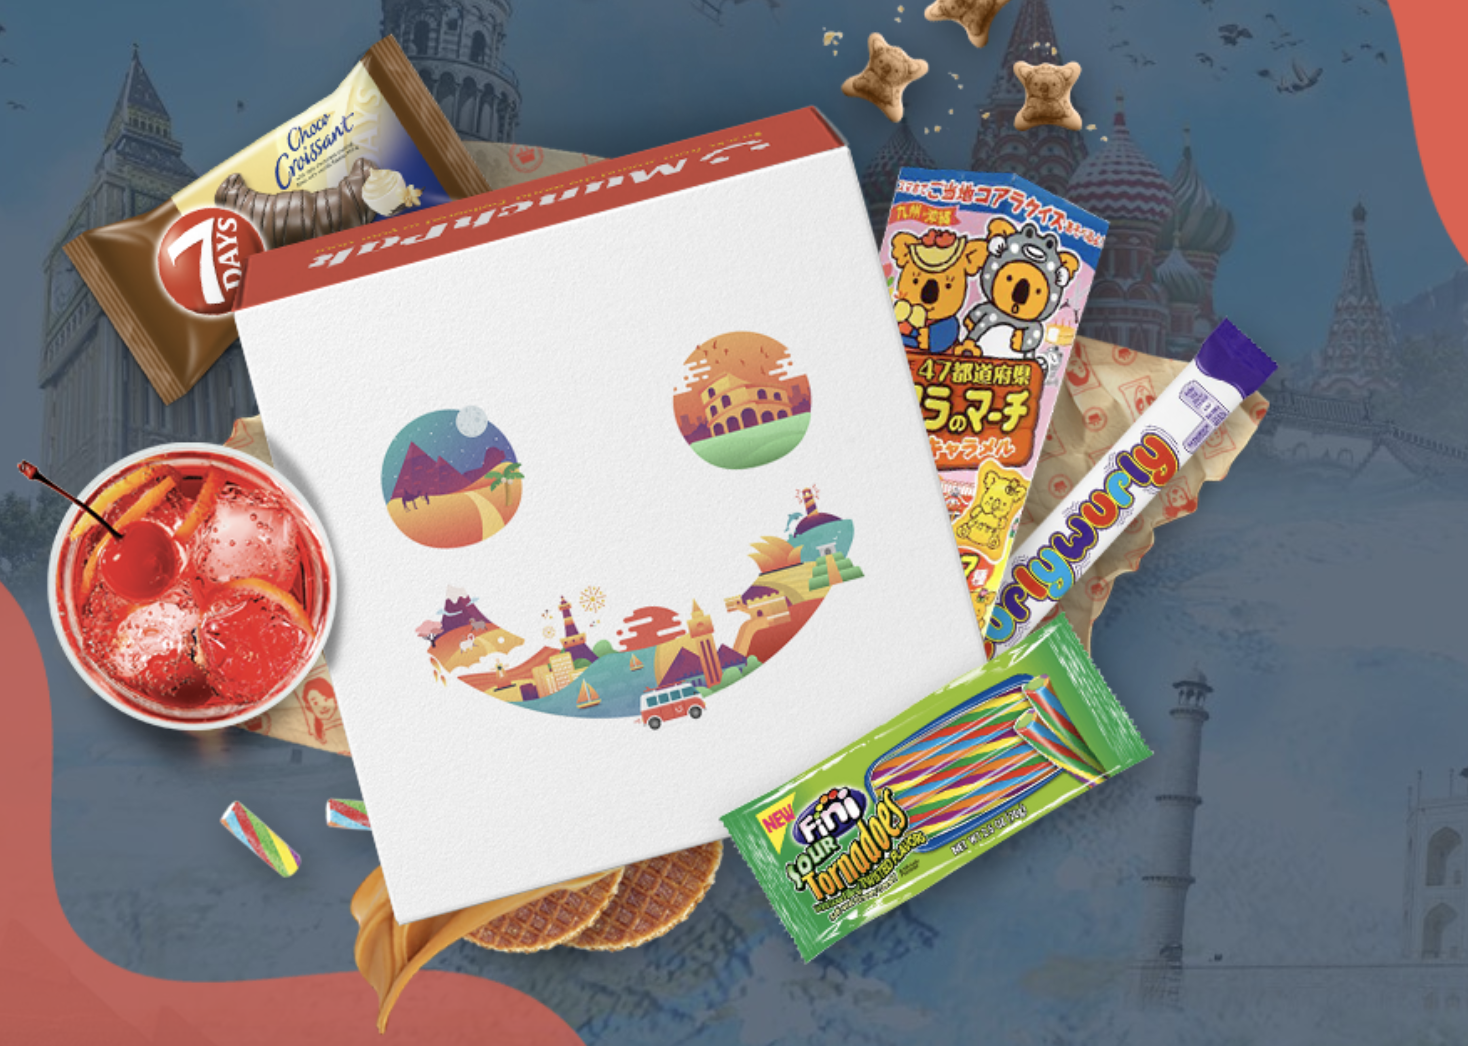 A MunchPak subscription box packed with different snacks, candies, and more food